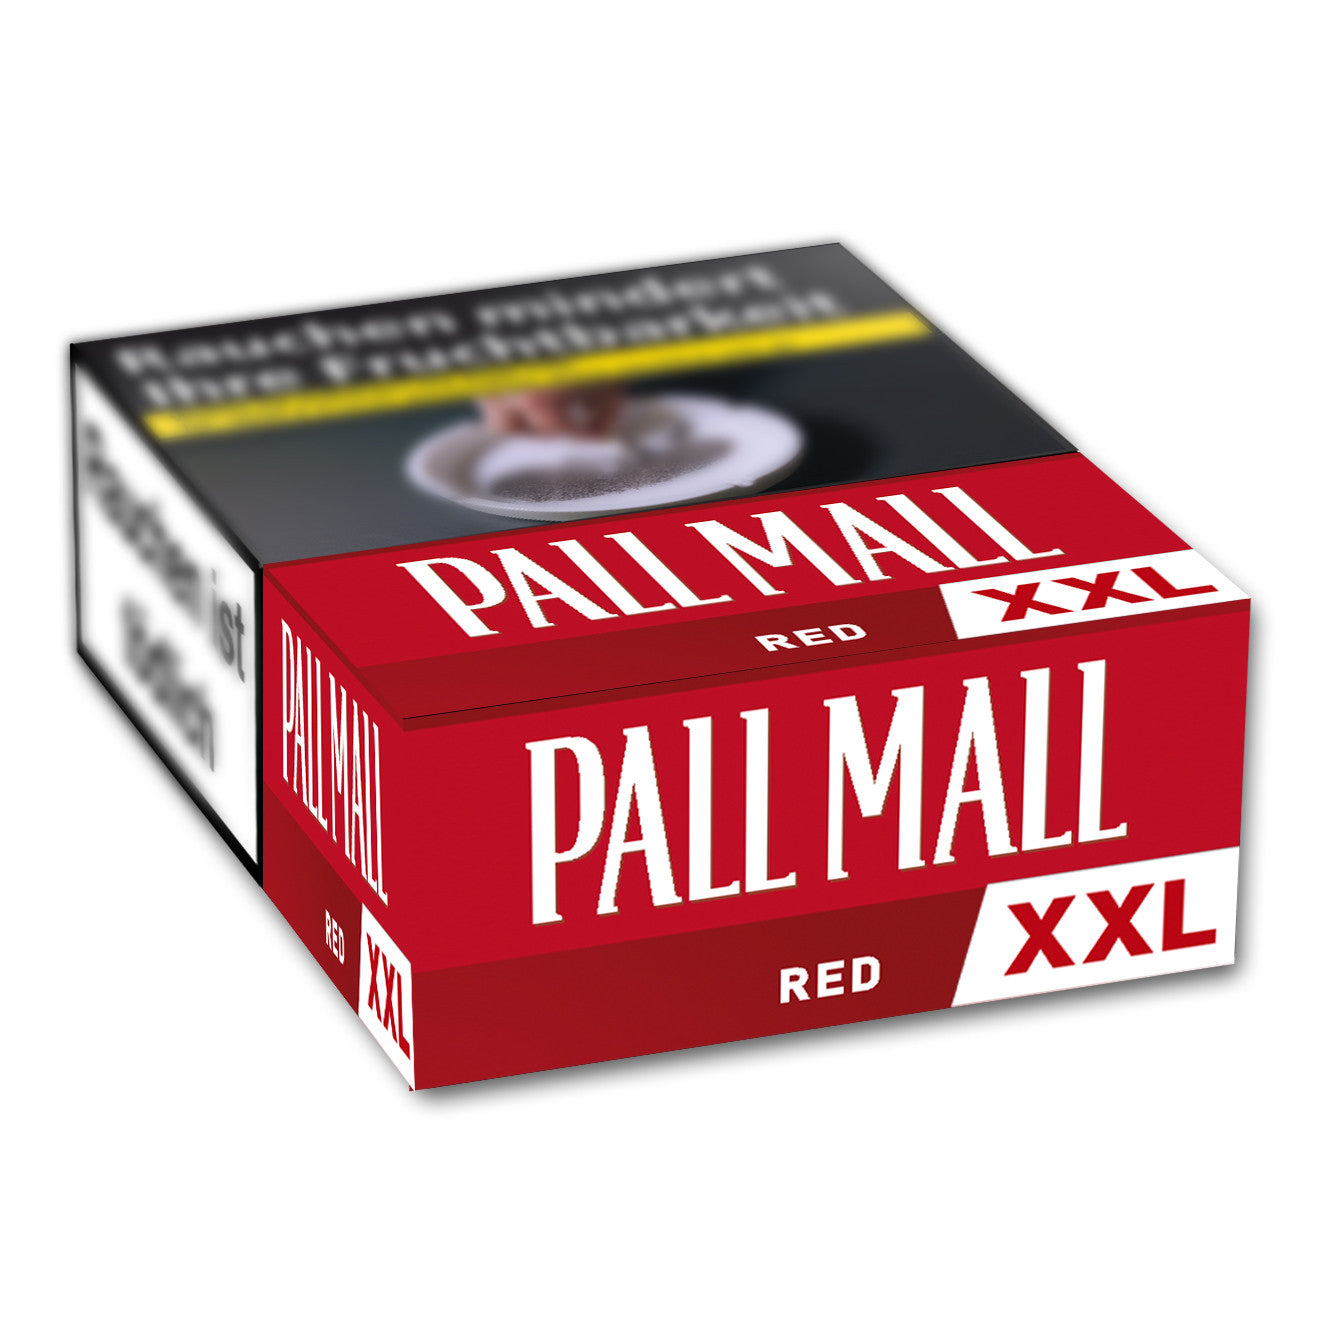 PALL MALL Red XL 7,00 Euro  (8x23)